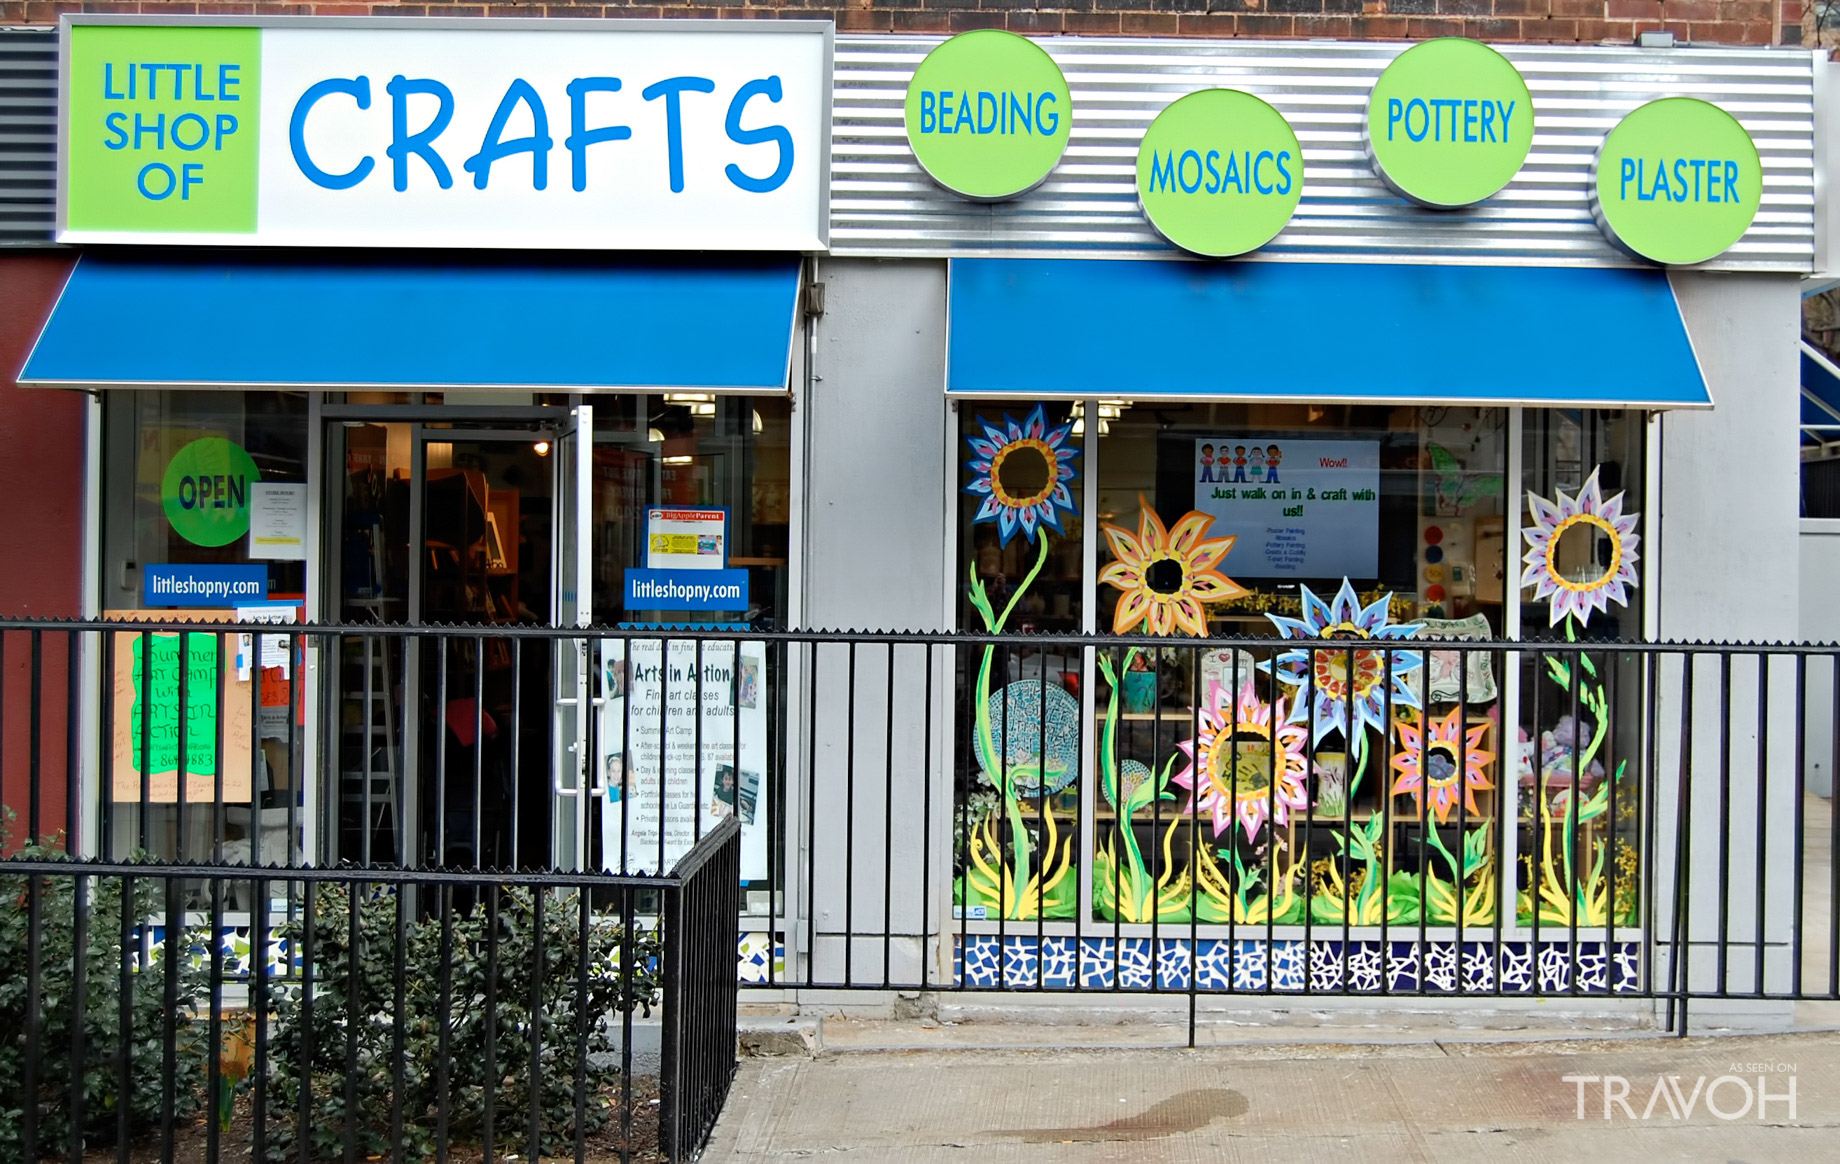 Little Shop of Crafts - 711 Amsterdam Ave, New York, NY 10025, USA